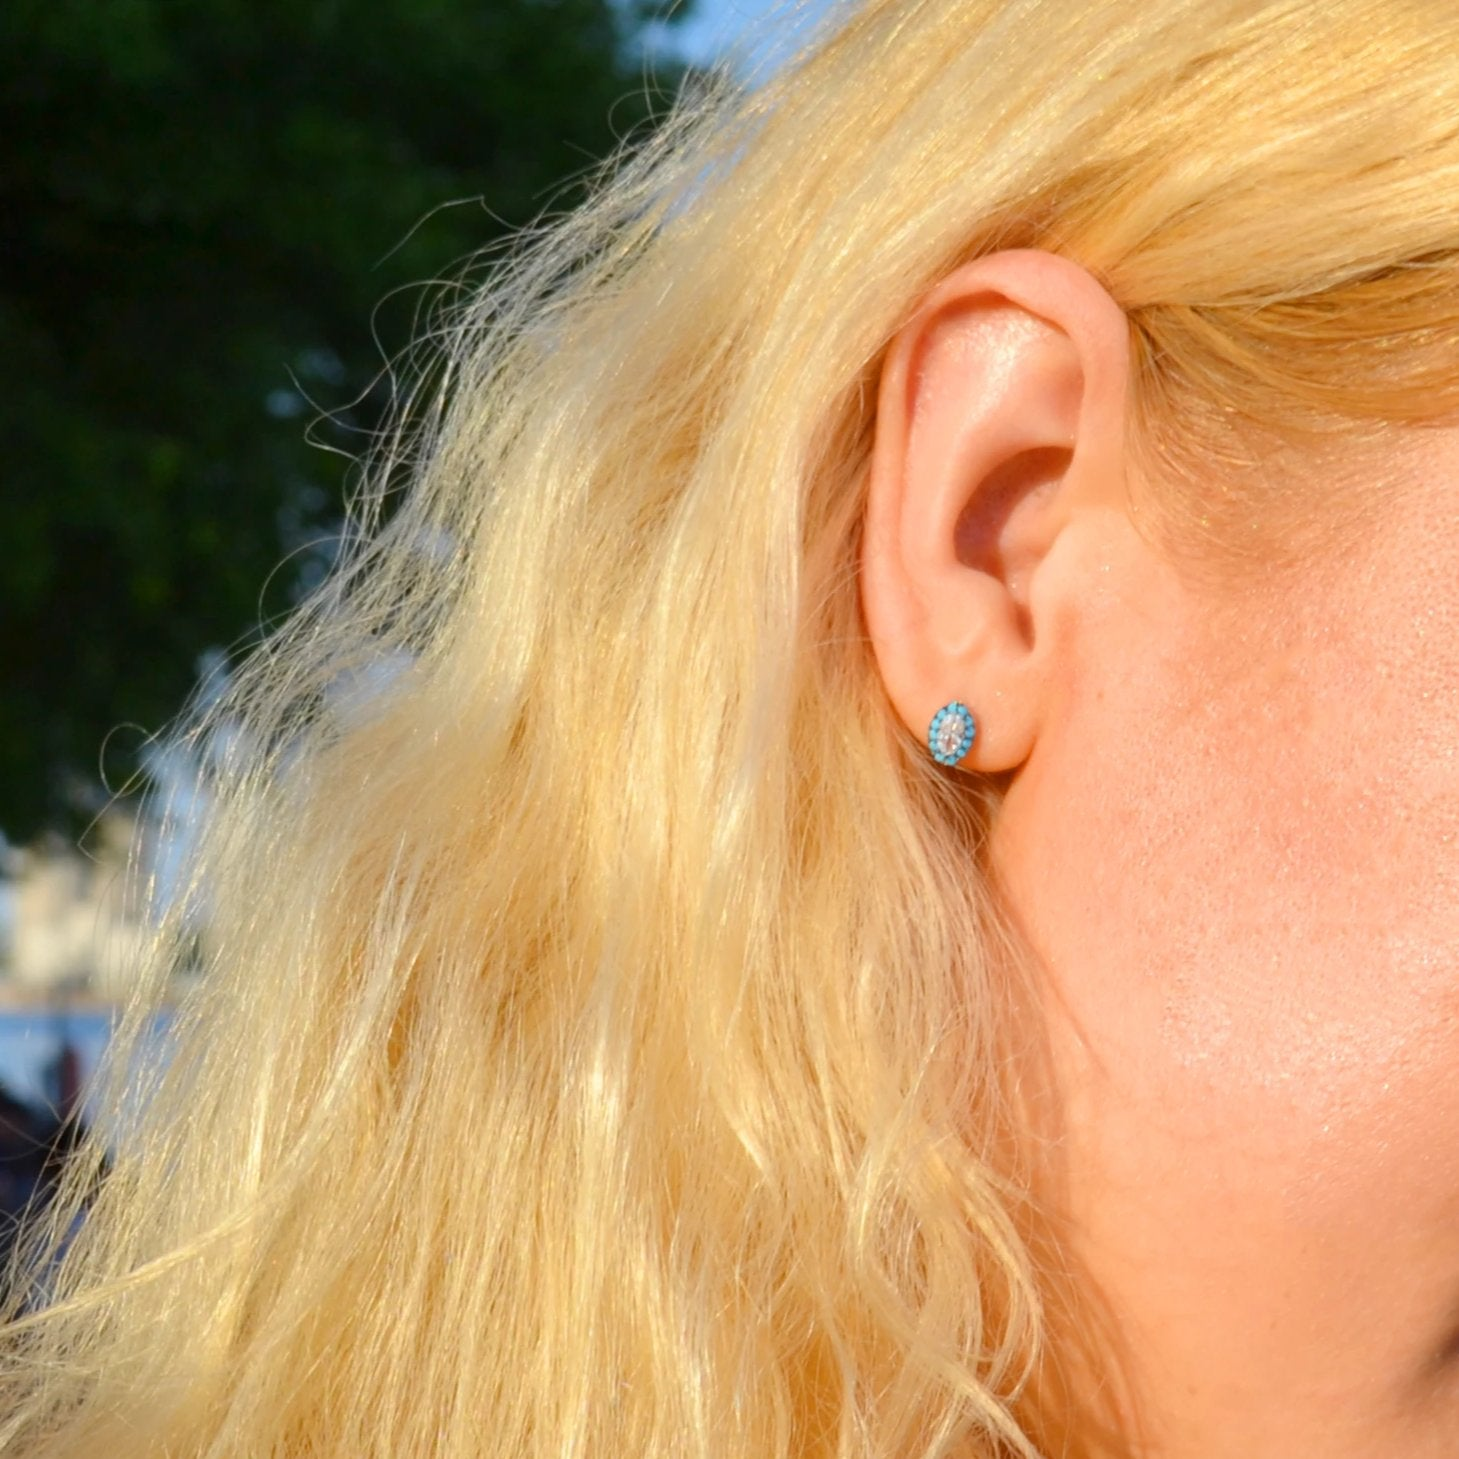 The Mes Me Rize Turquoise Earrings